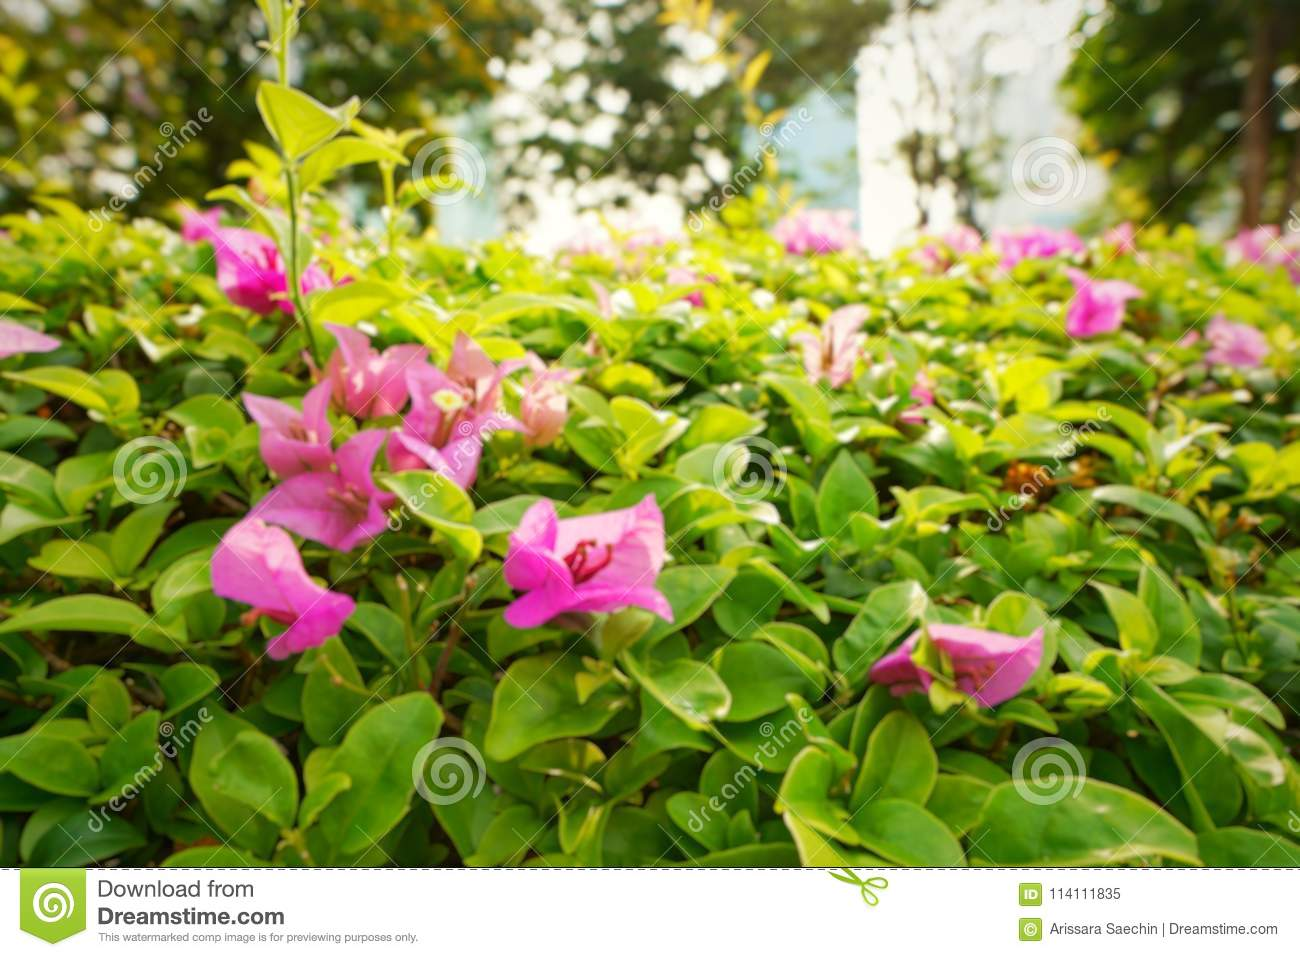 Bougainvillea Wallpaper Pink Flower On Green Natural Background Blooming Bougainvillea